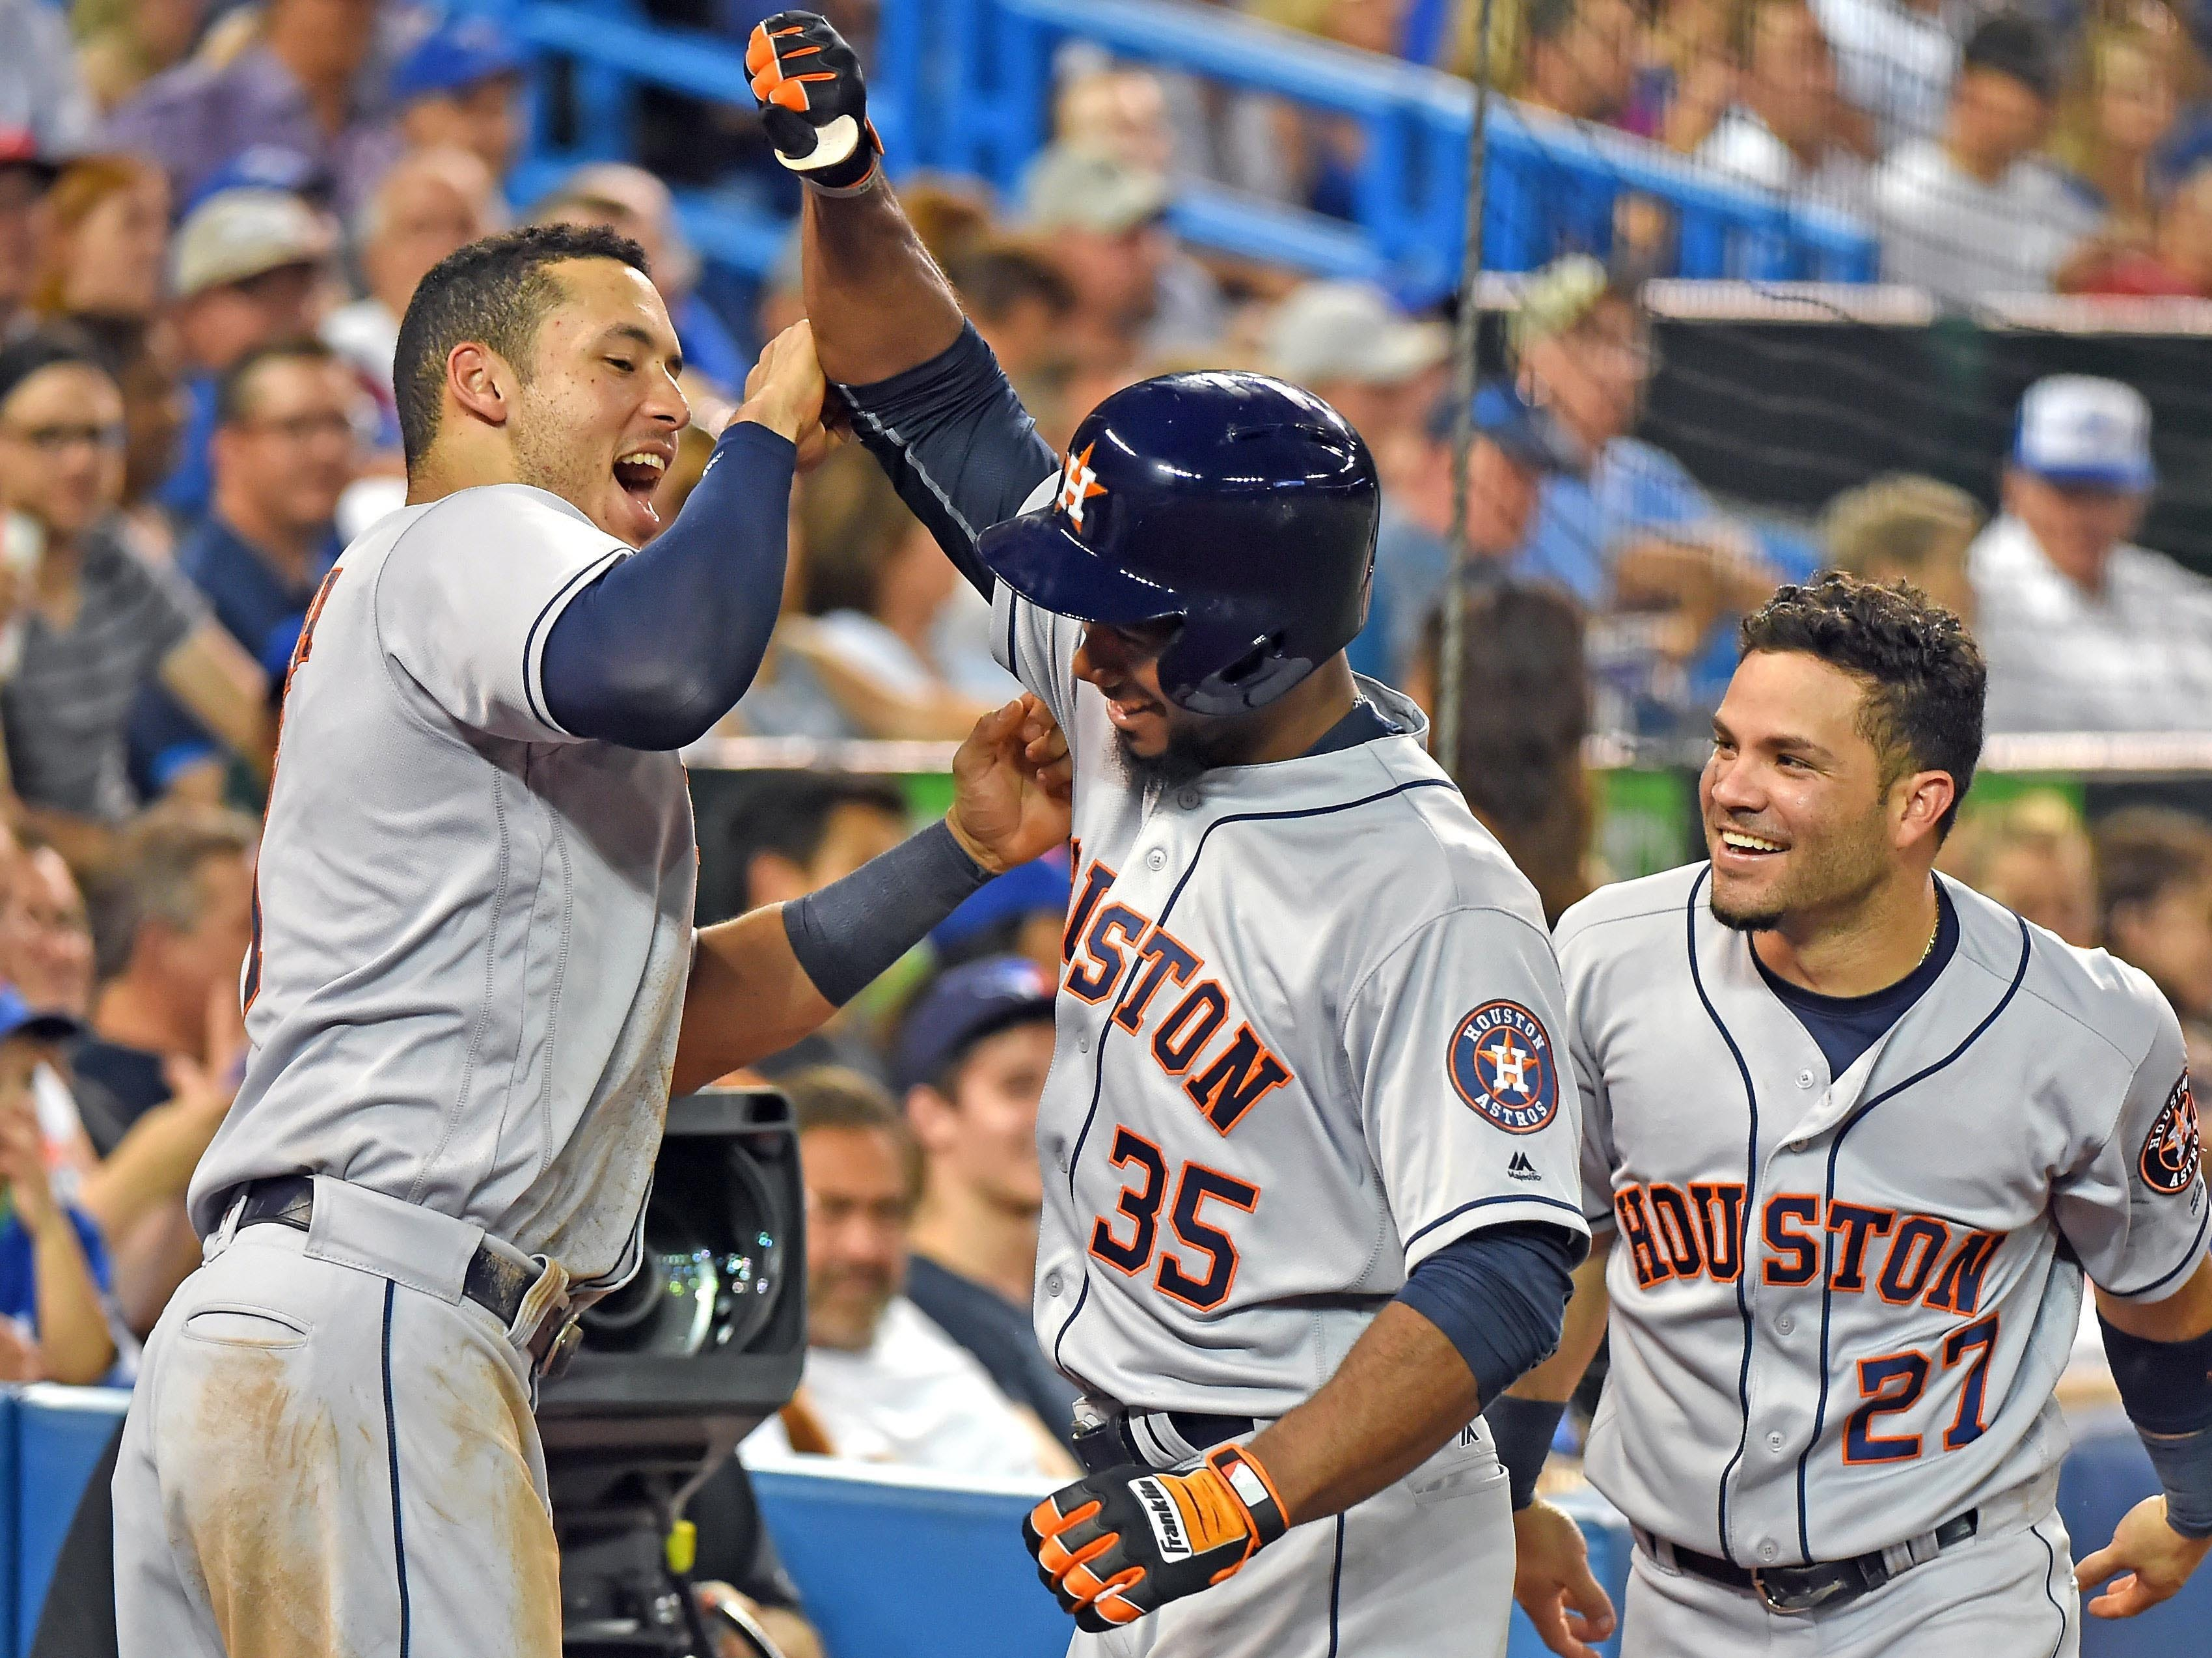 Aug 12, 2016; Toronto, Ontario, CAN;  Houston Astros center fielder Teoscar Hernandez (35) is greeted by shortstop Carlos Correa (1) and second baseman Jose Altuve (27) after hitting a home run in his major league debut against Toronto Blue Jays in the fifth inning at Rogers Centre. Mandatory Credit: Dan Hamilton-USA TODAY Sports